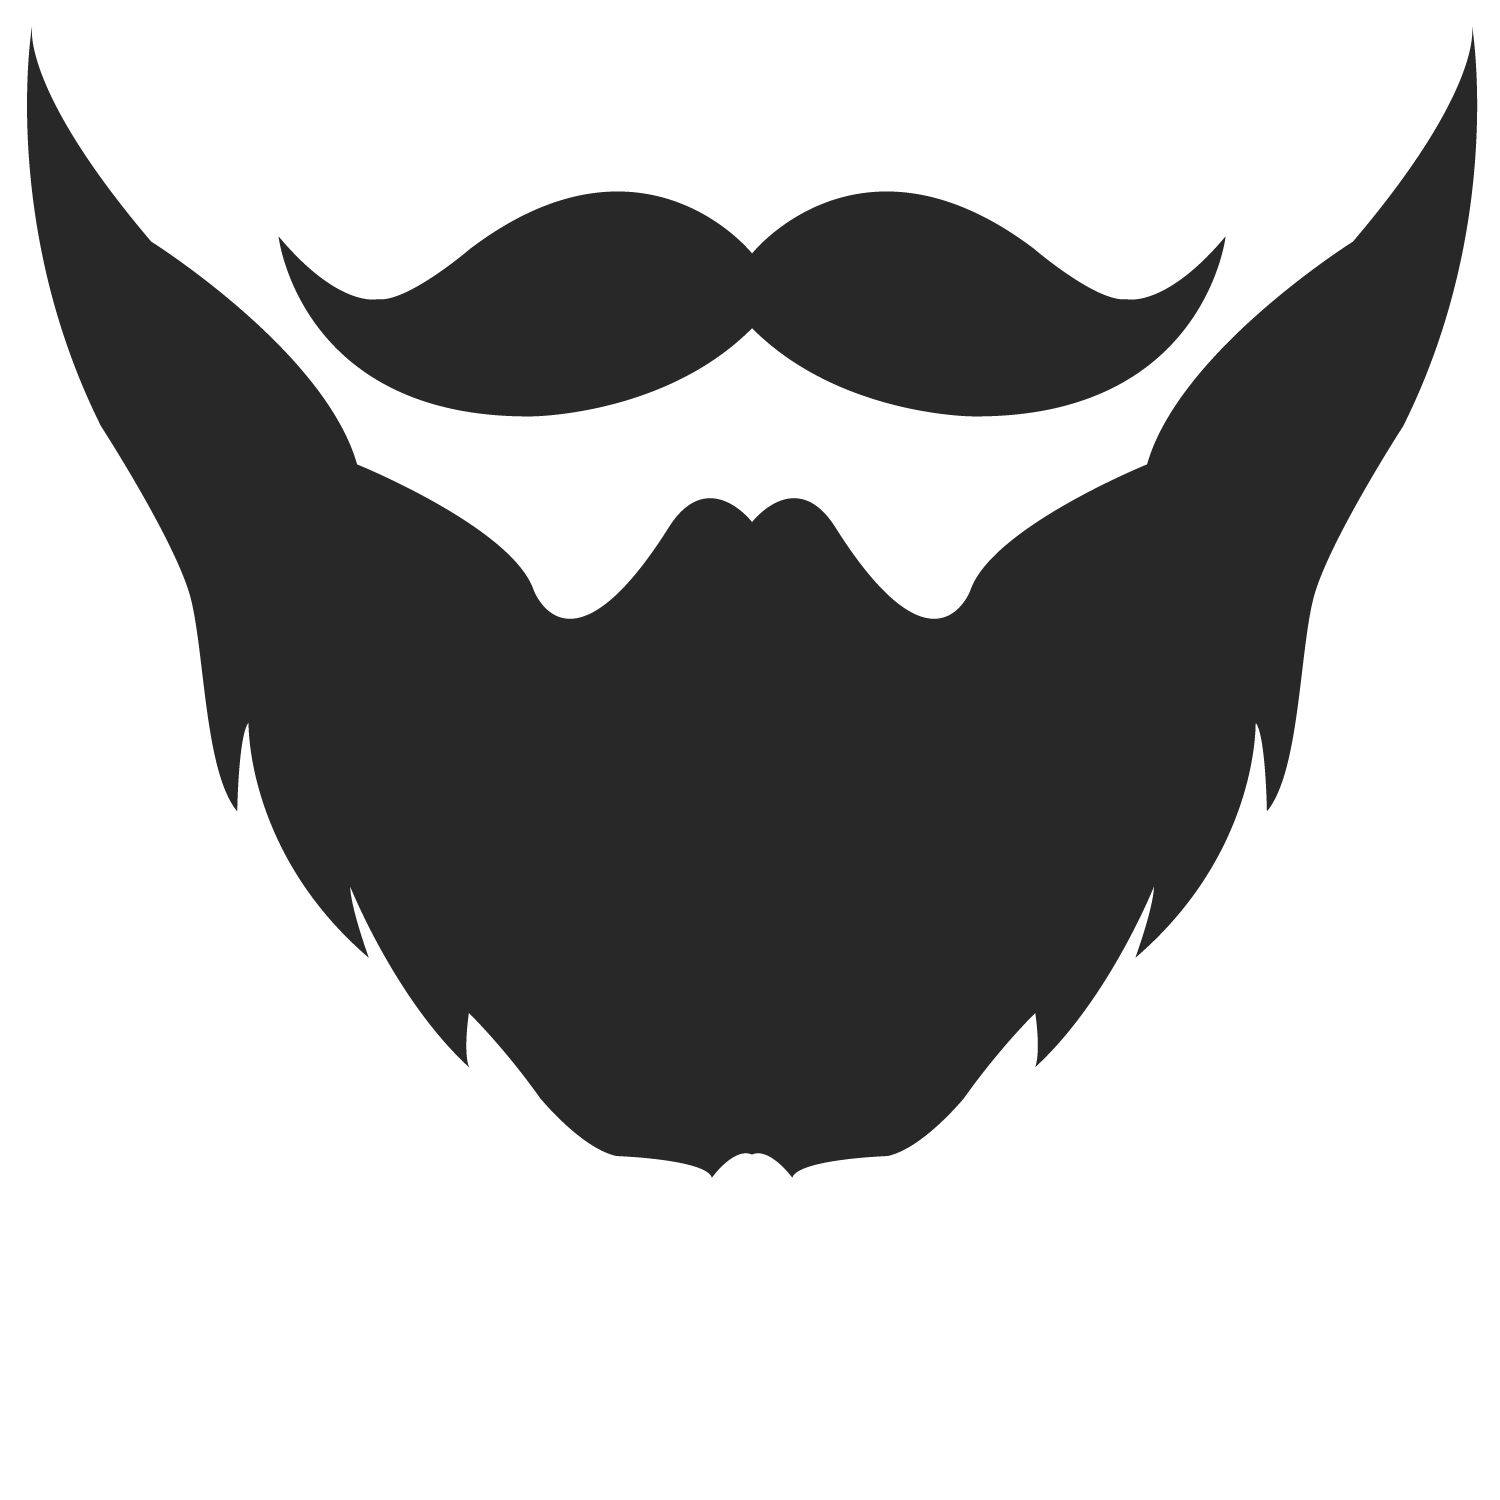 Beard clipart template. Logo google search pinterest